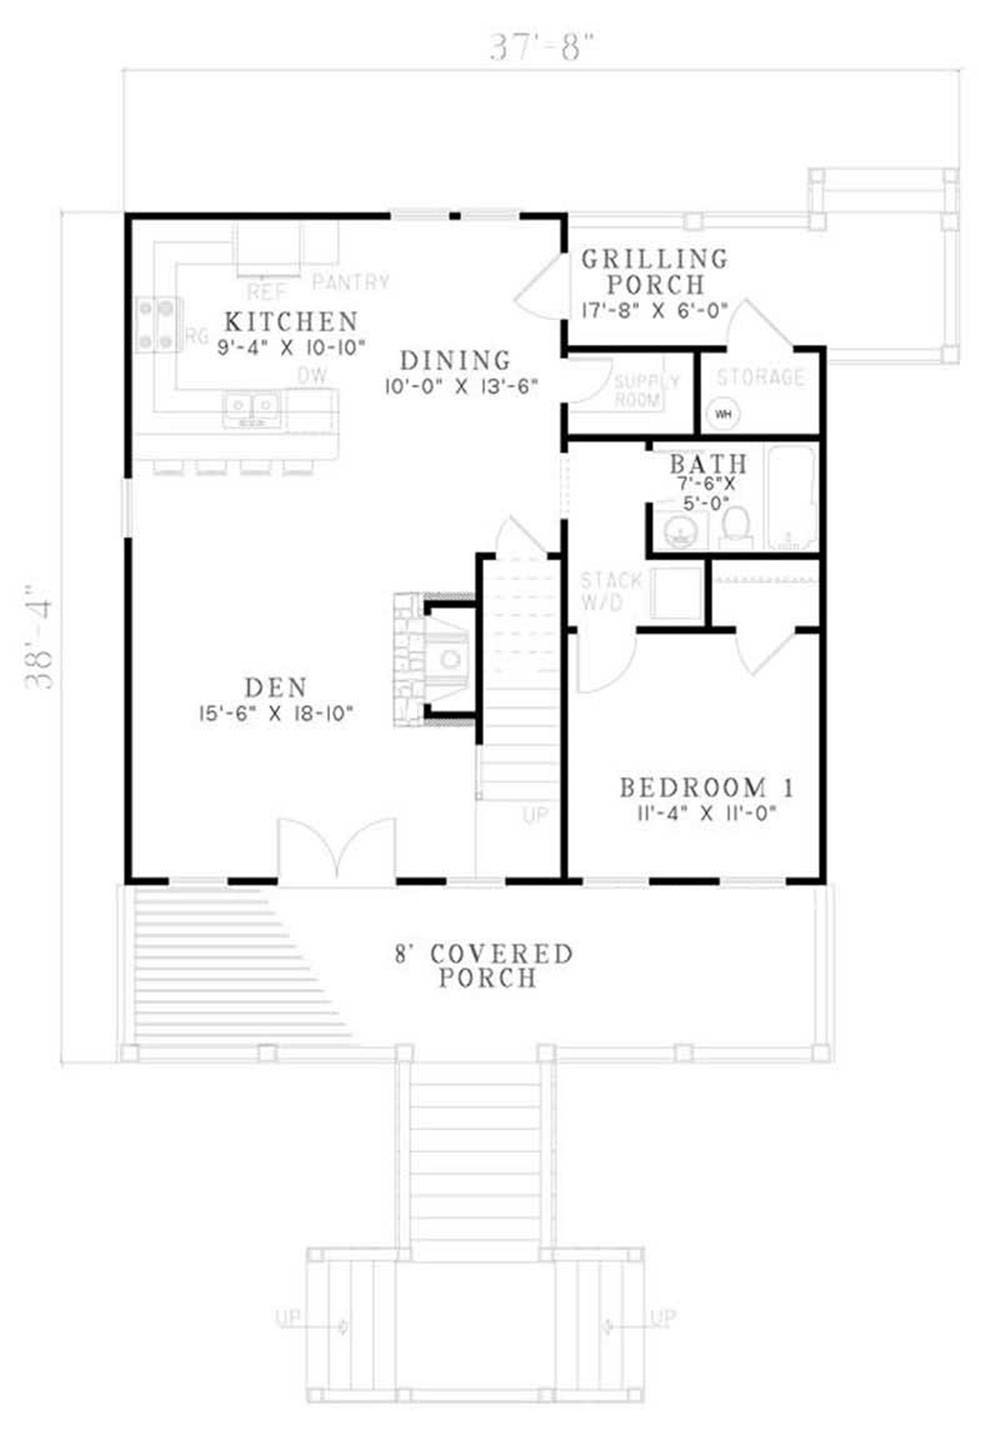 House Plan NDG-1181 Main Floor Plan